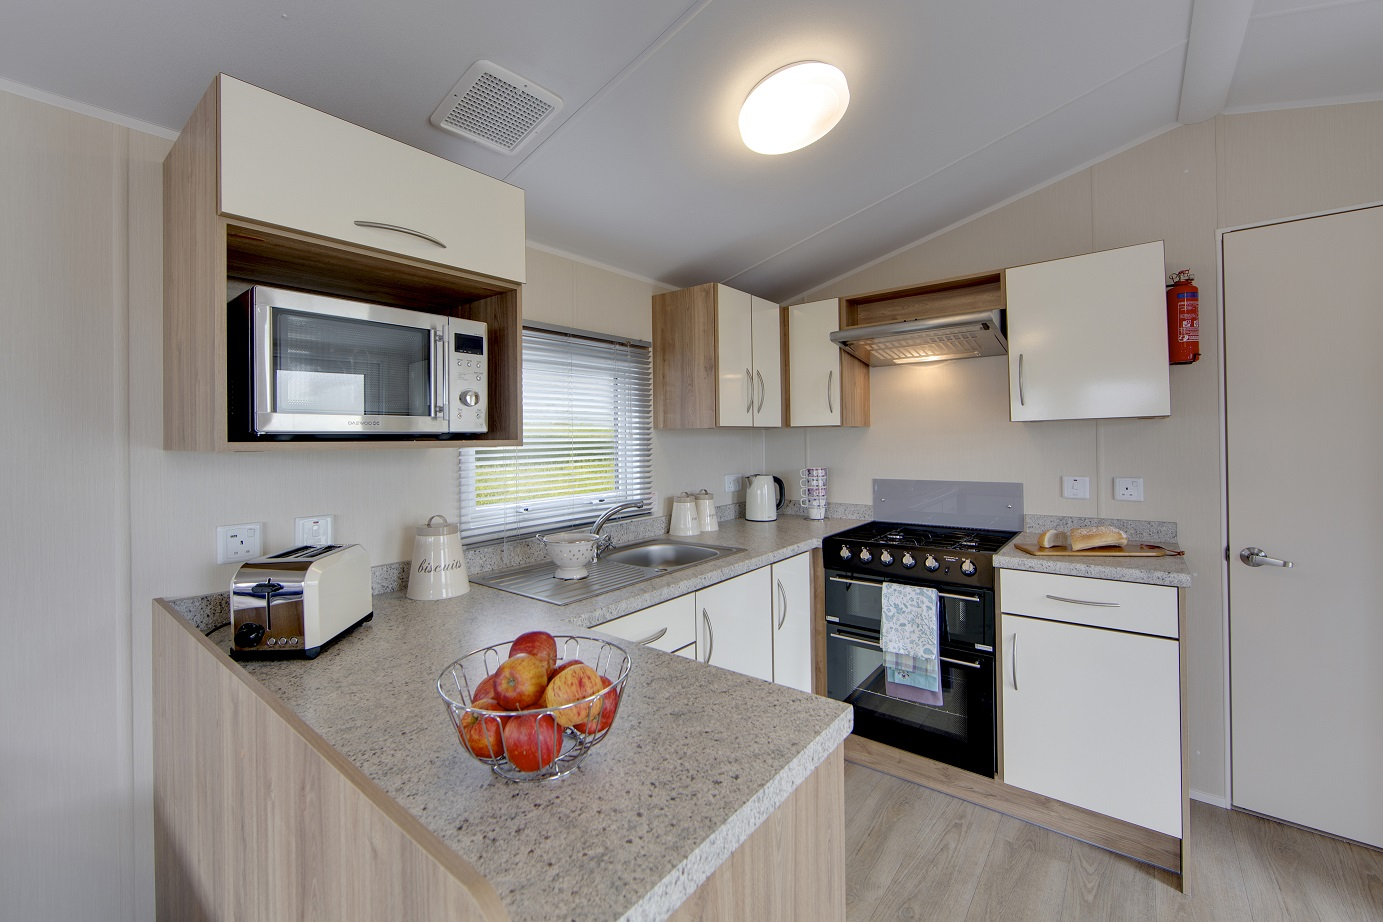 Willerby Rio Gold: Static Caravans and Holiday Homes for Sale on Caravan Parks, Stanhope, Durham and Weardale Image 2